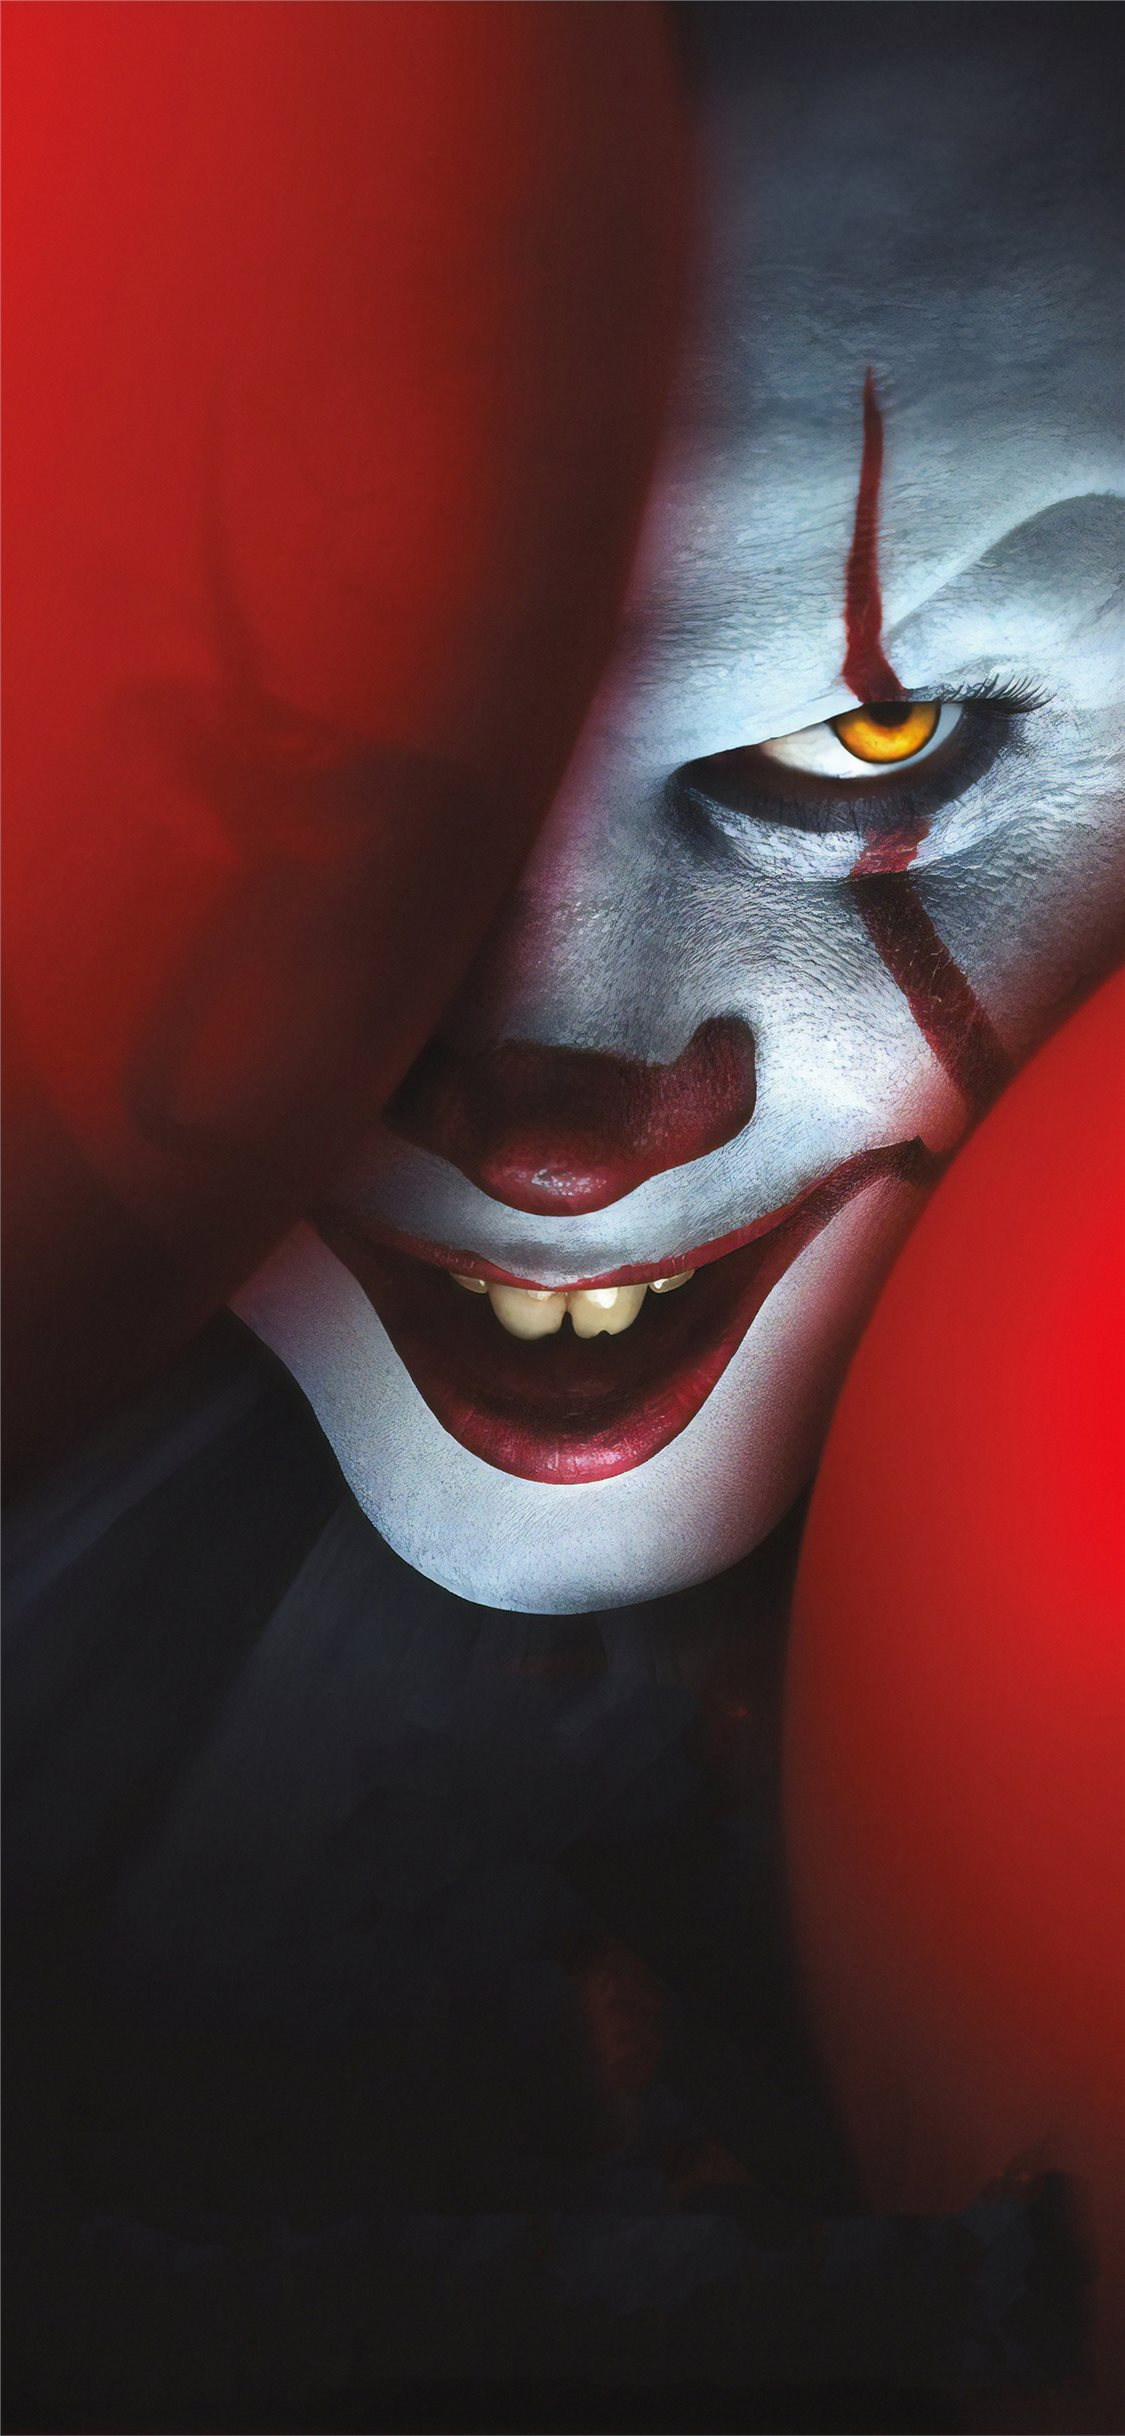 4k It Chapter 2 Iphone Wallpapers Free Download